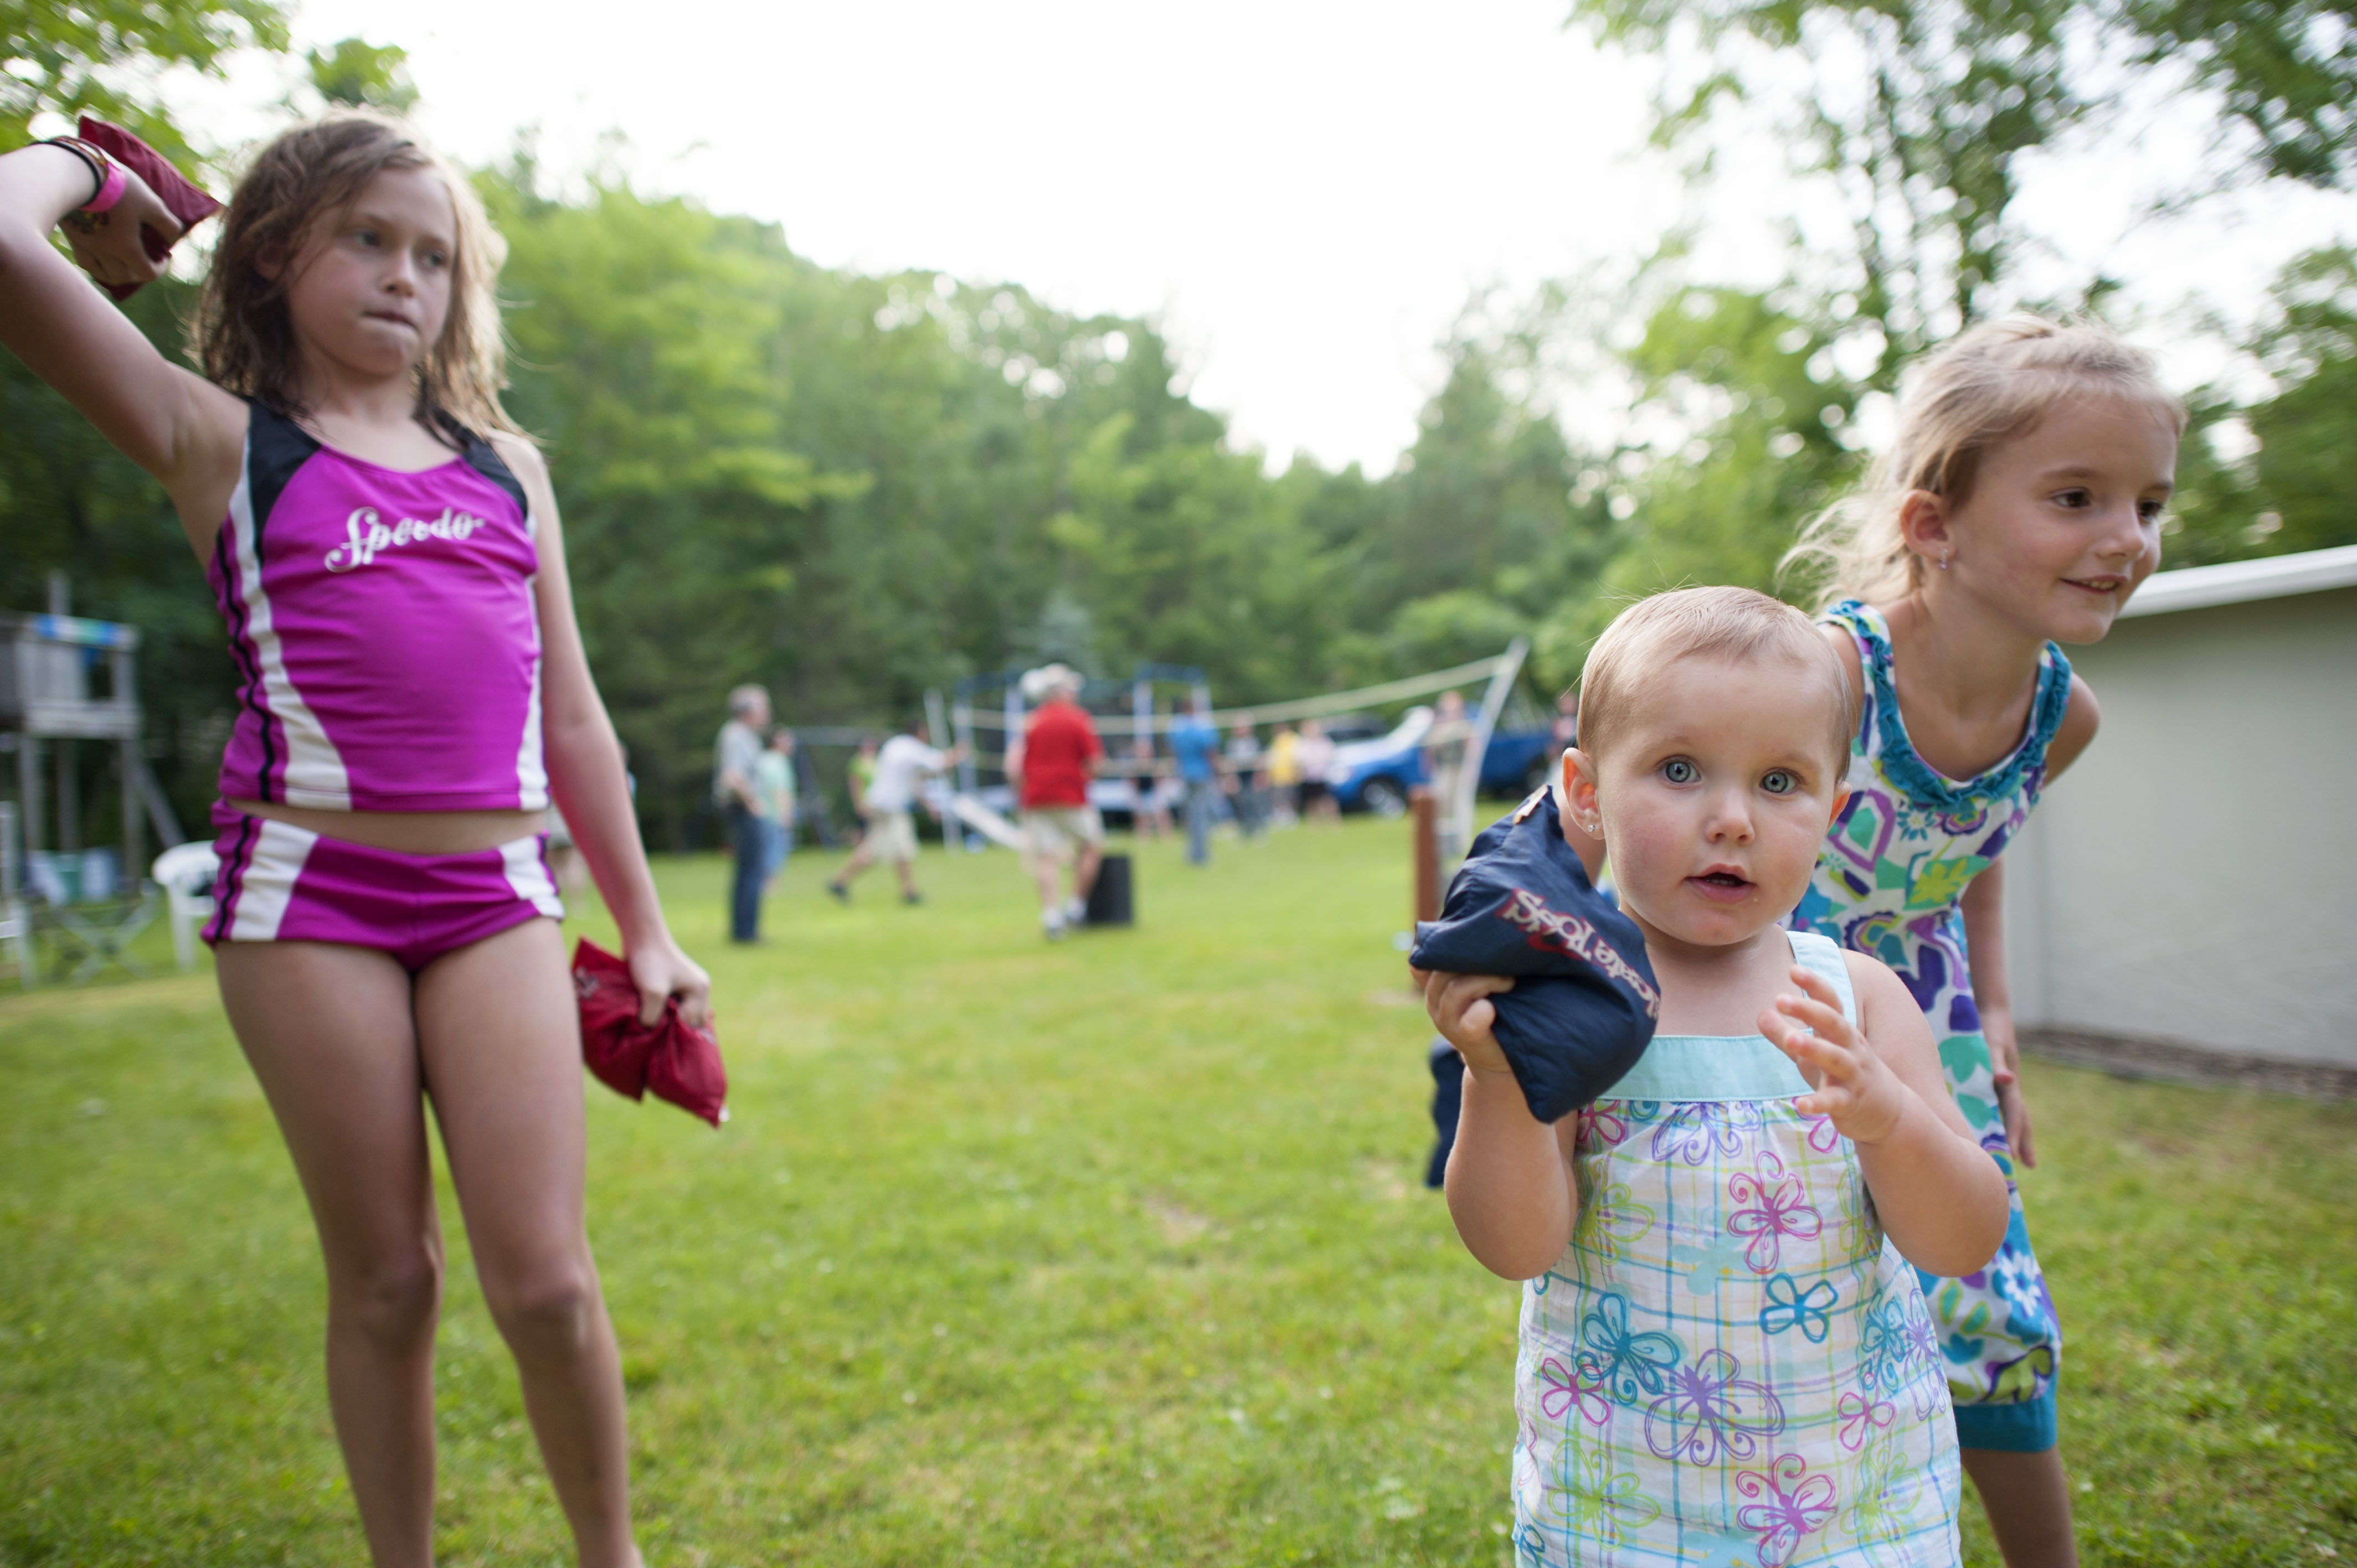 Small children at a Fourth of July backyard party.